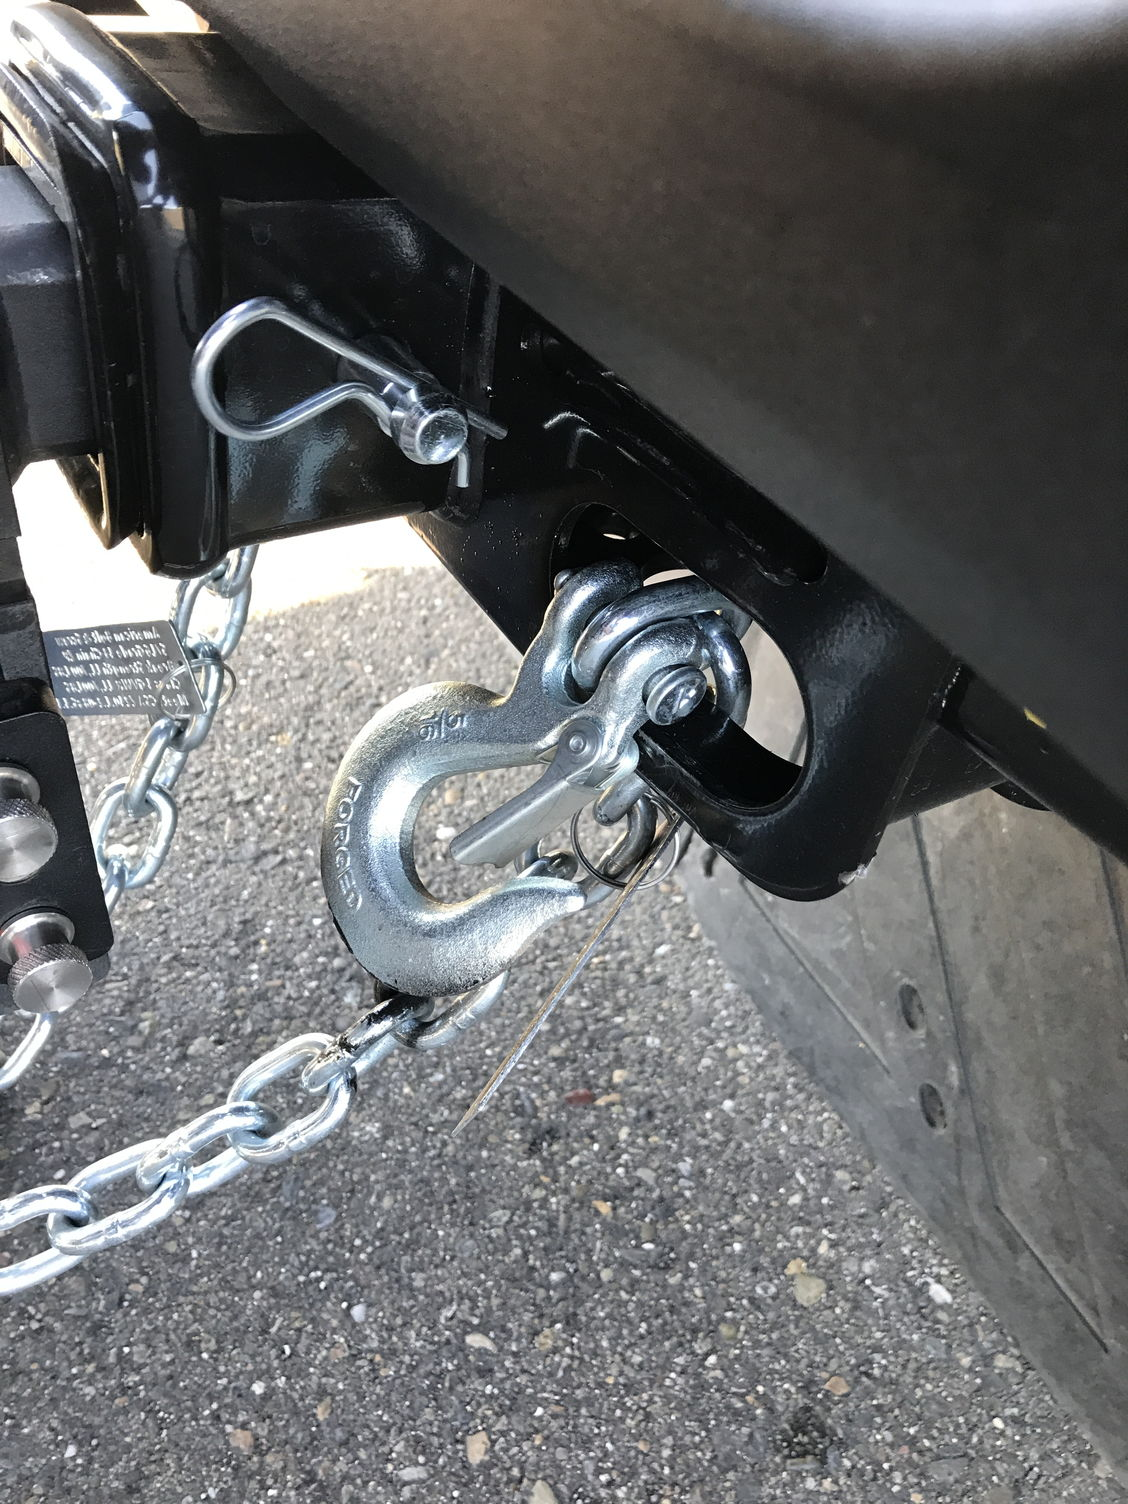 from Jeffery safety chain hook up